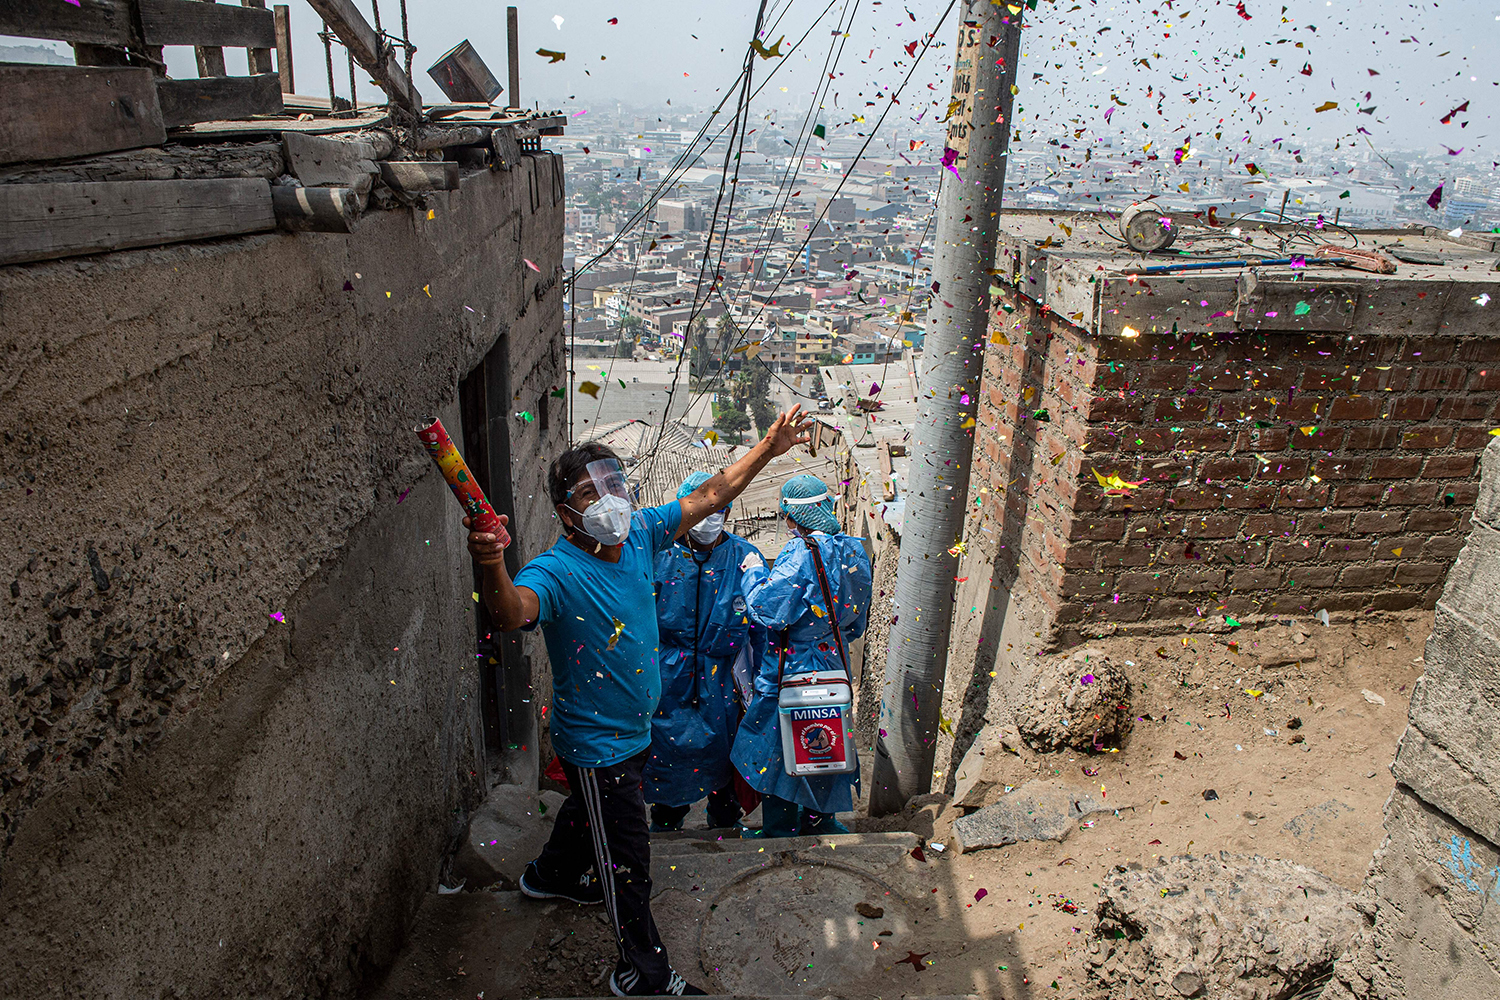 A man celebrates after health workers inoculate a woman with a dose of the Pfizer-BioNTech vaccine at her house in Lima, Peru, on April 28. ERNESTO BENAVIDES/AFP via Getty Images